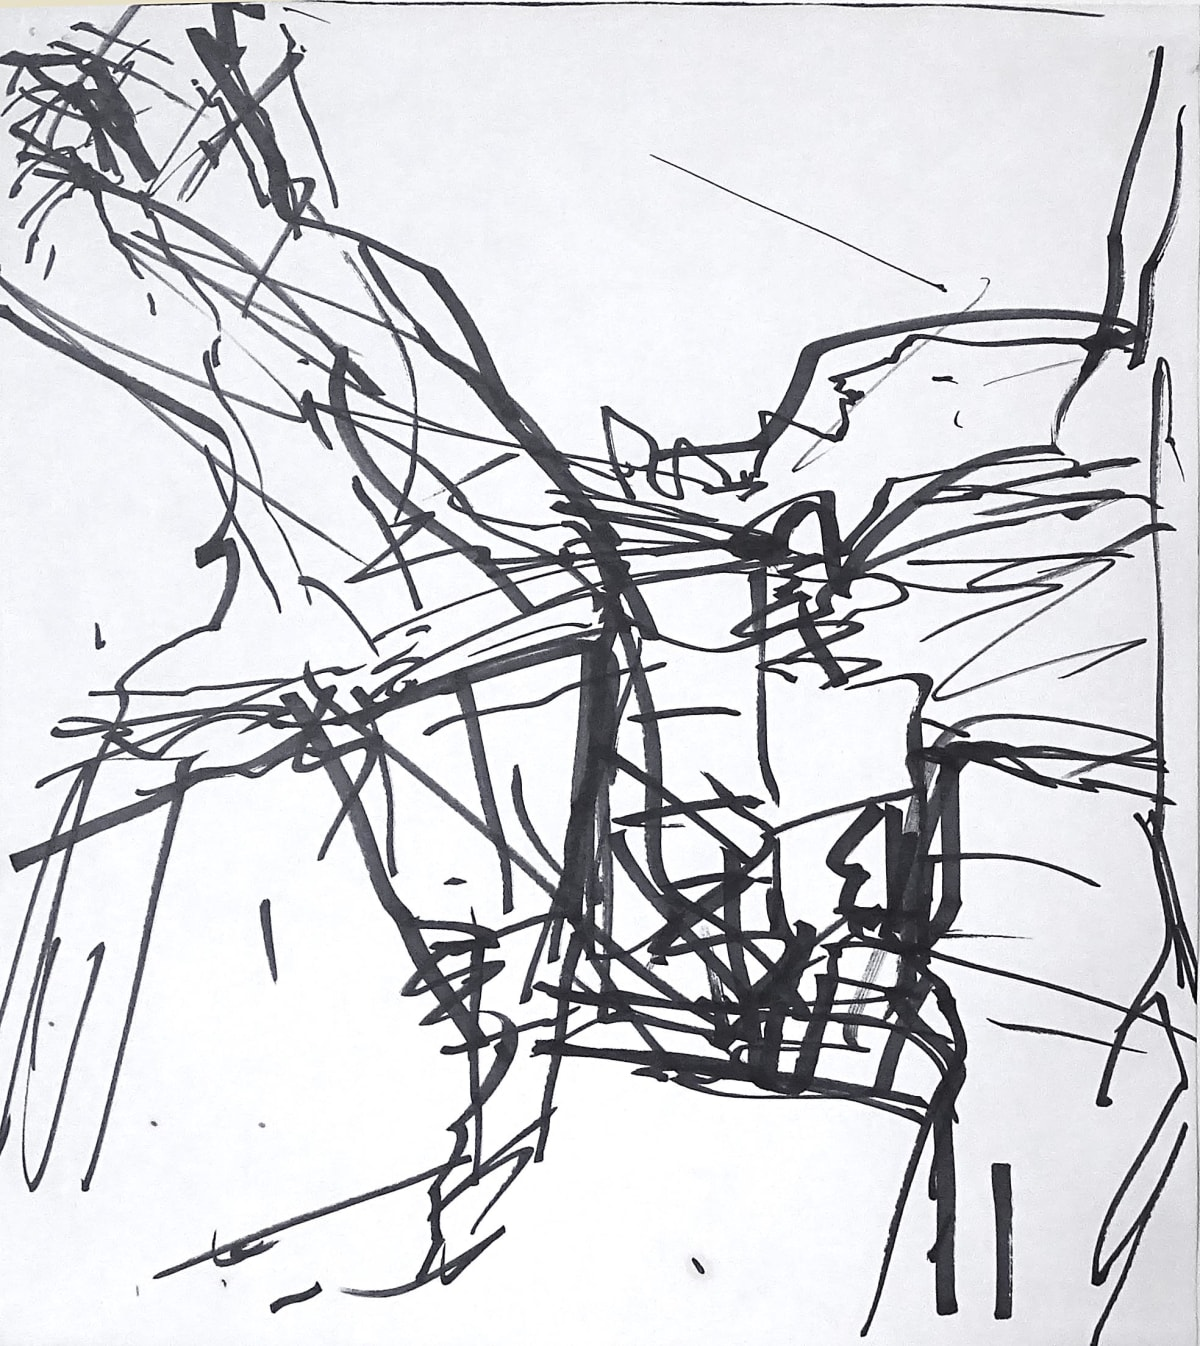 Frank Auerbach, Study for 'To the Studios', 1990-1991